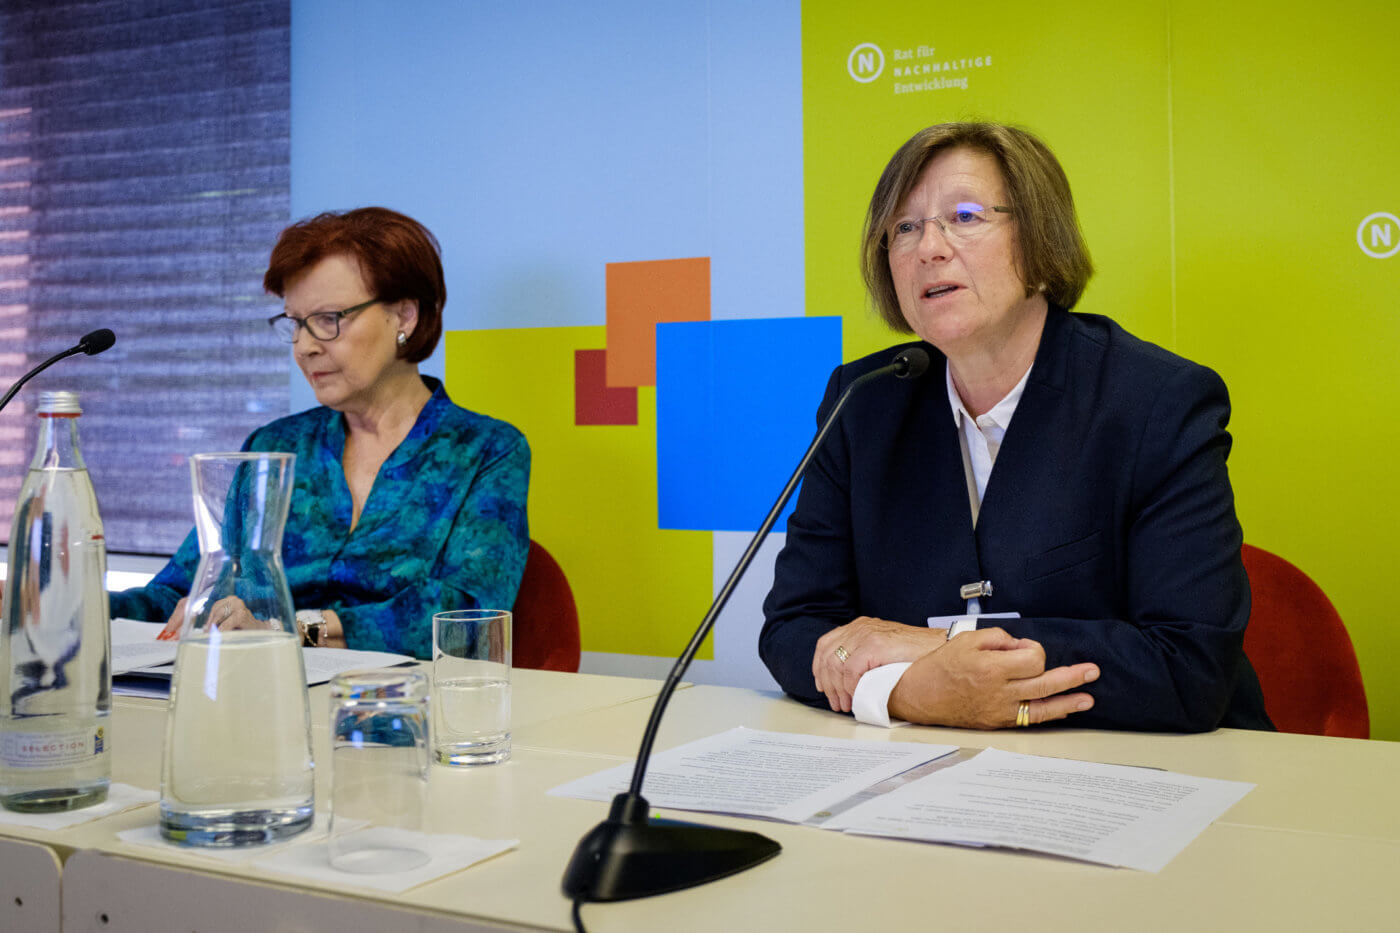 Press conference at the 19th Annual Conference of the Council on 4 June 2019 in Berlin, Photo: André Wagenzik/Andreas Domma © German Council for Sustainable Development (RNE)